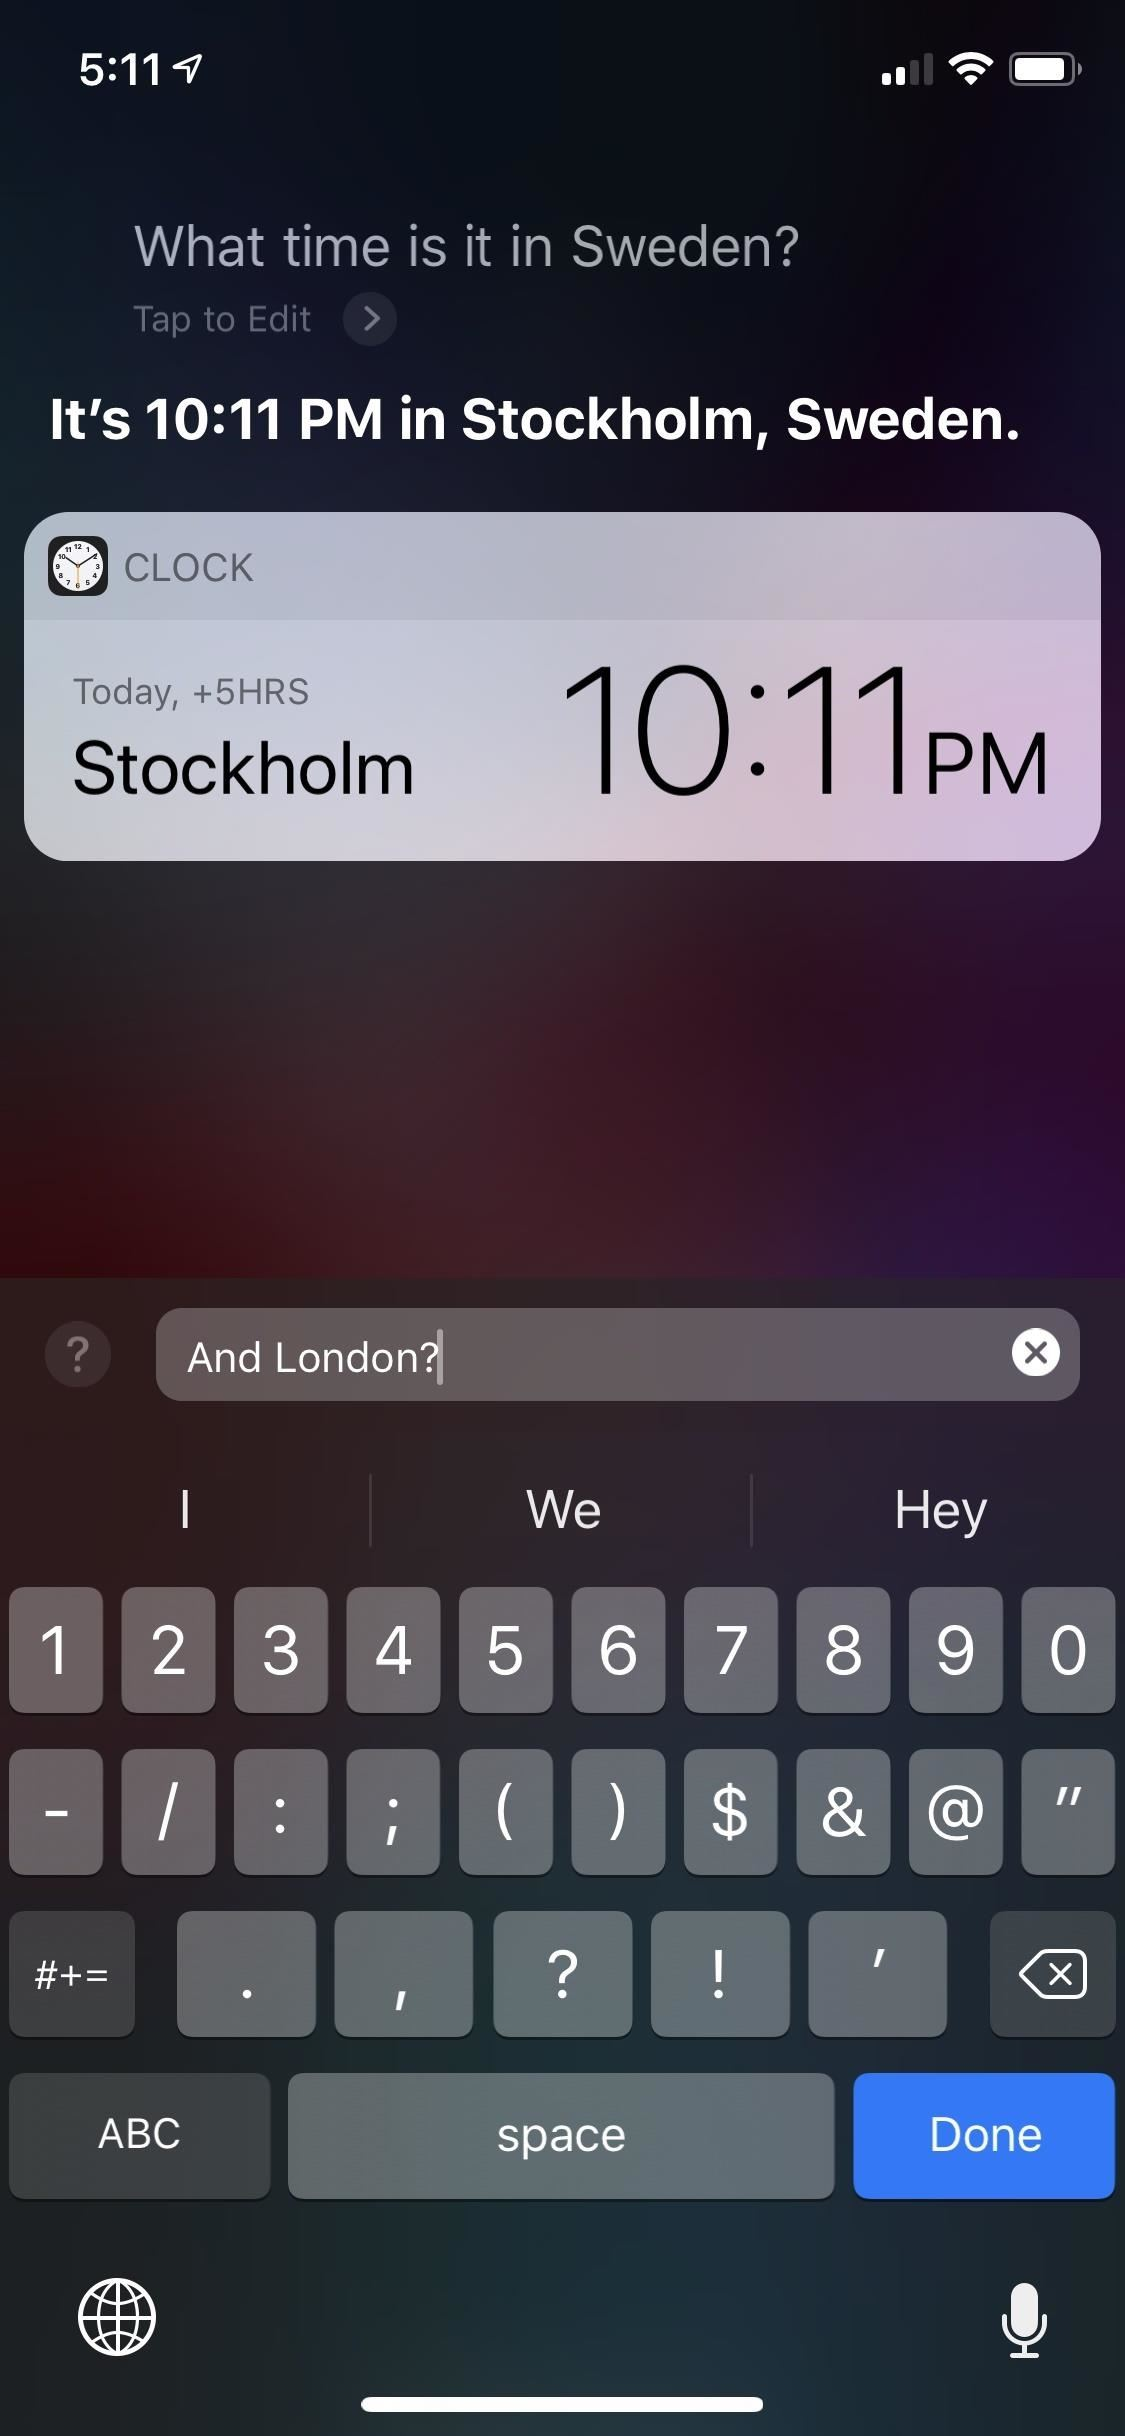 How to Type to Siri on Your iPhone When You Do not Want to Talk